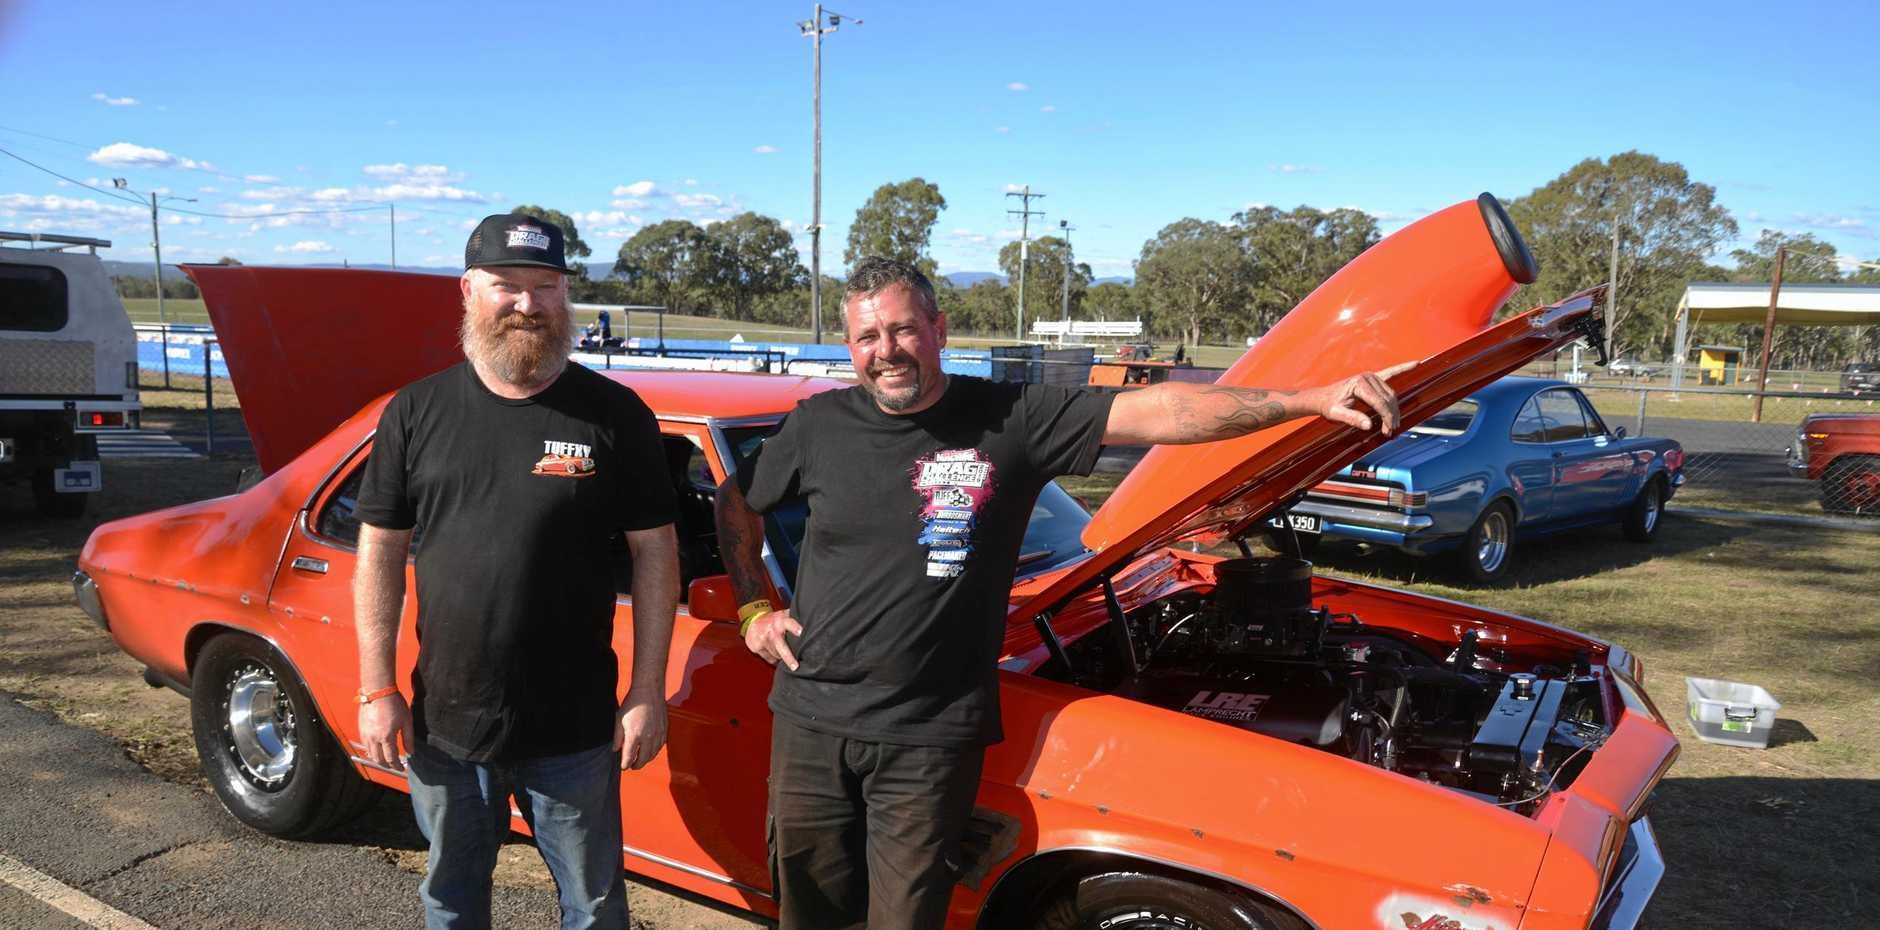 Organiser Simon Telford and driver Steve Carkeet with the GTS Monaro which was nine hours on the side of the highway being repaired on Saturday night.